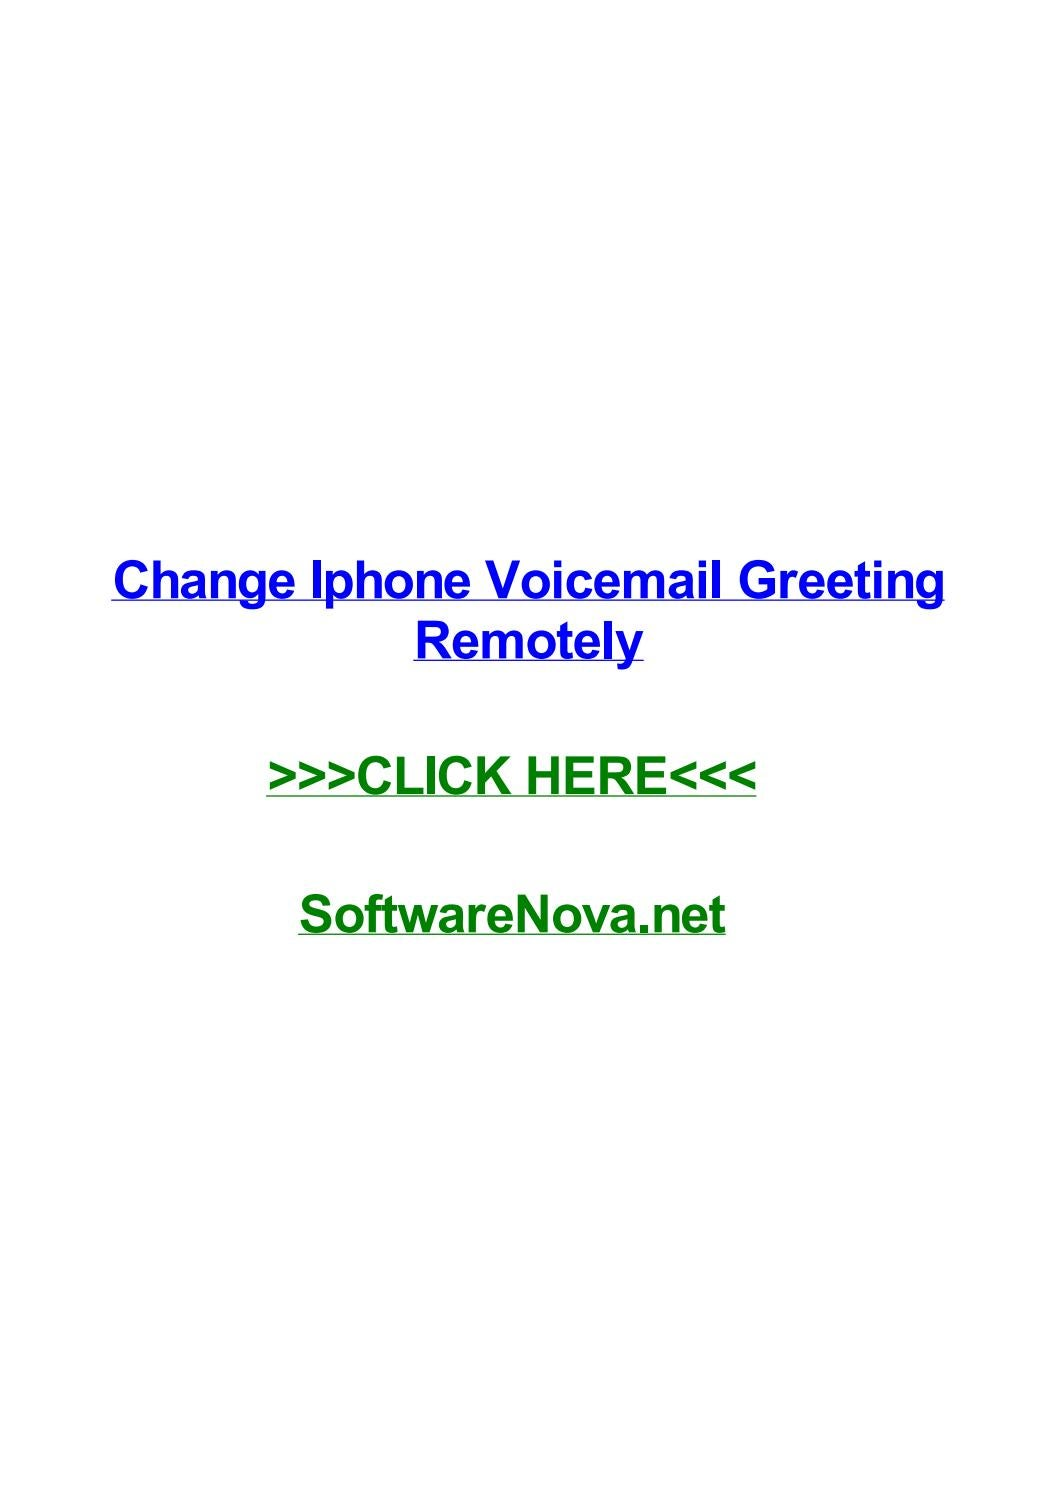 Change Iphone Voicemail Greeting Remotely By Kevinvyba Issuu